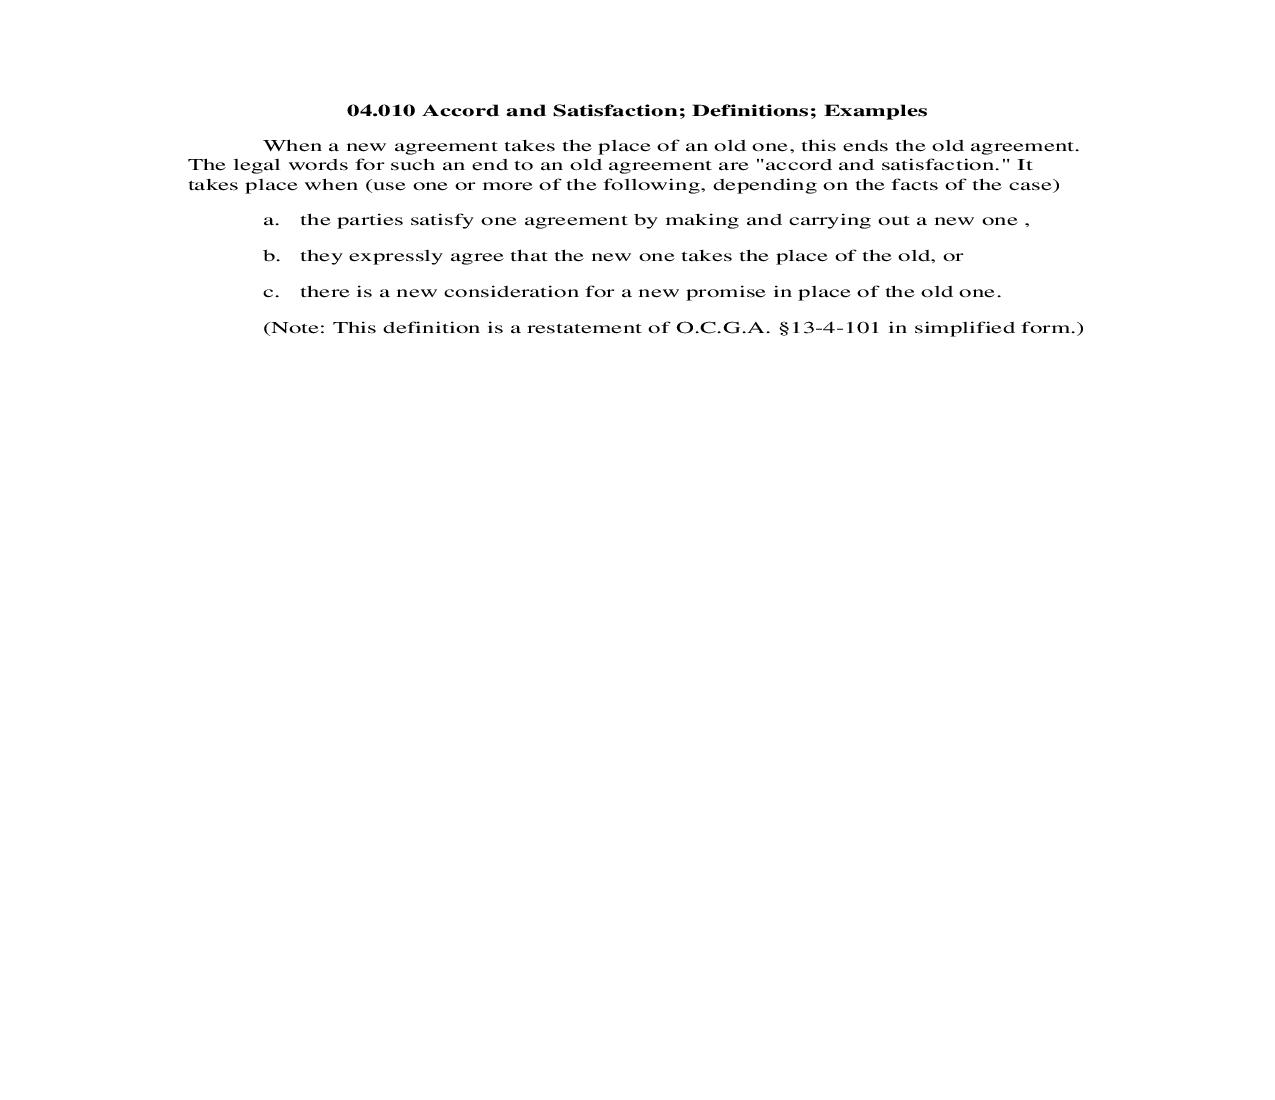 04.010 Accord and Satisfaction; Definitions; Examples | Pdf Doc Docx | Georgia_JI